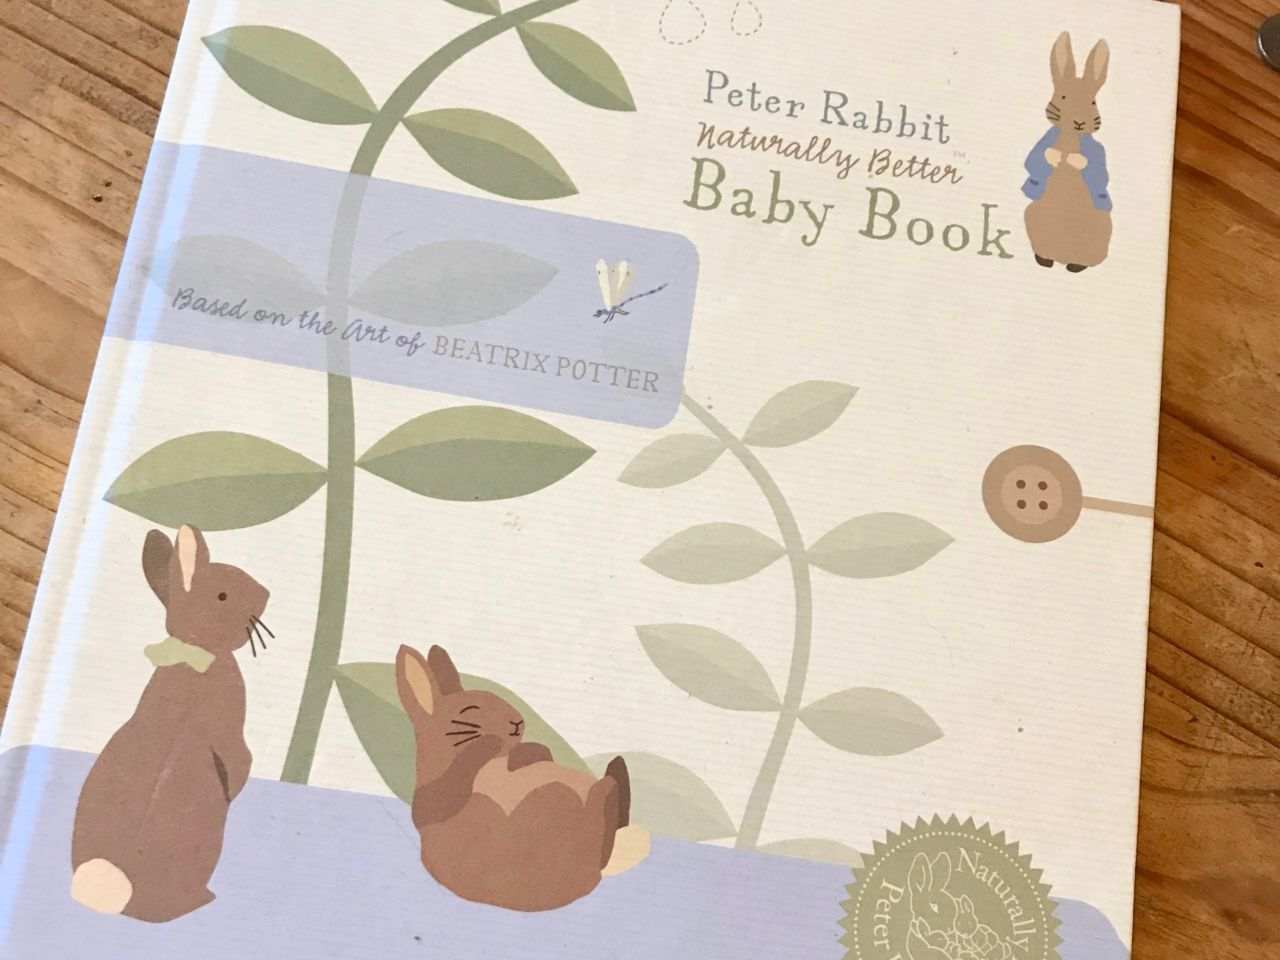 Peter Rabbit baby book - 13 weeks blogger pregnancy diary